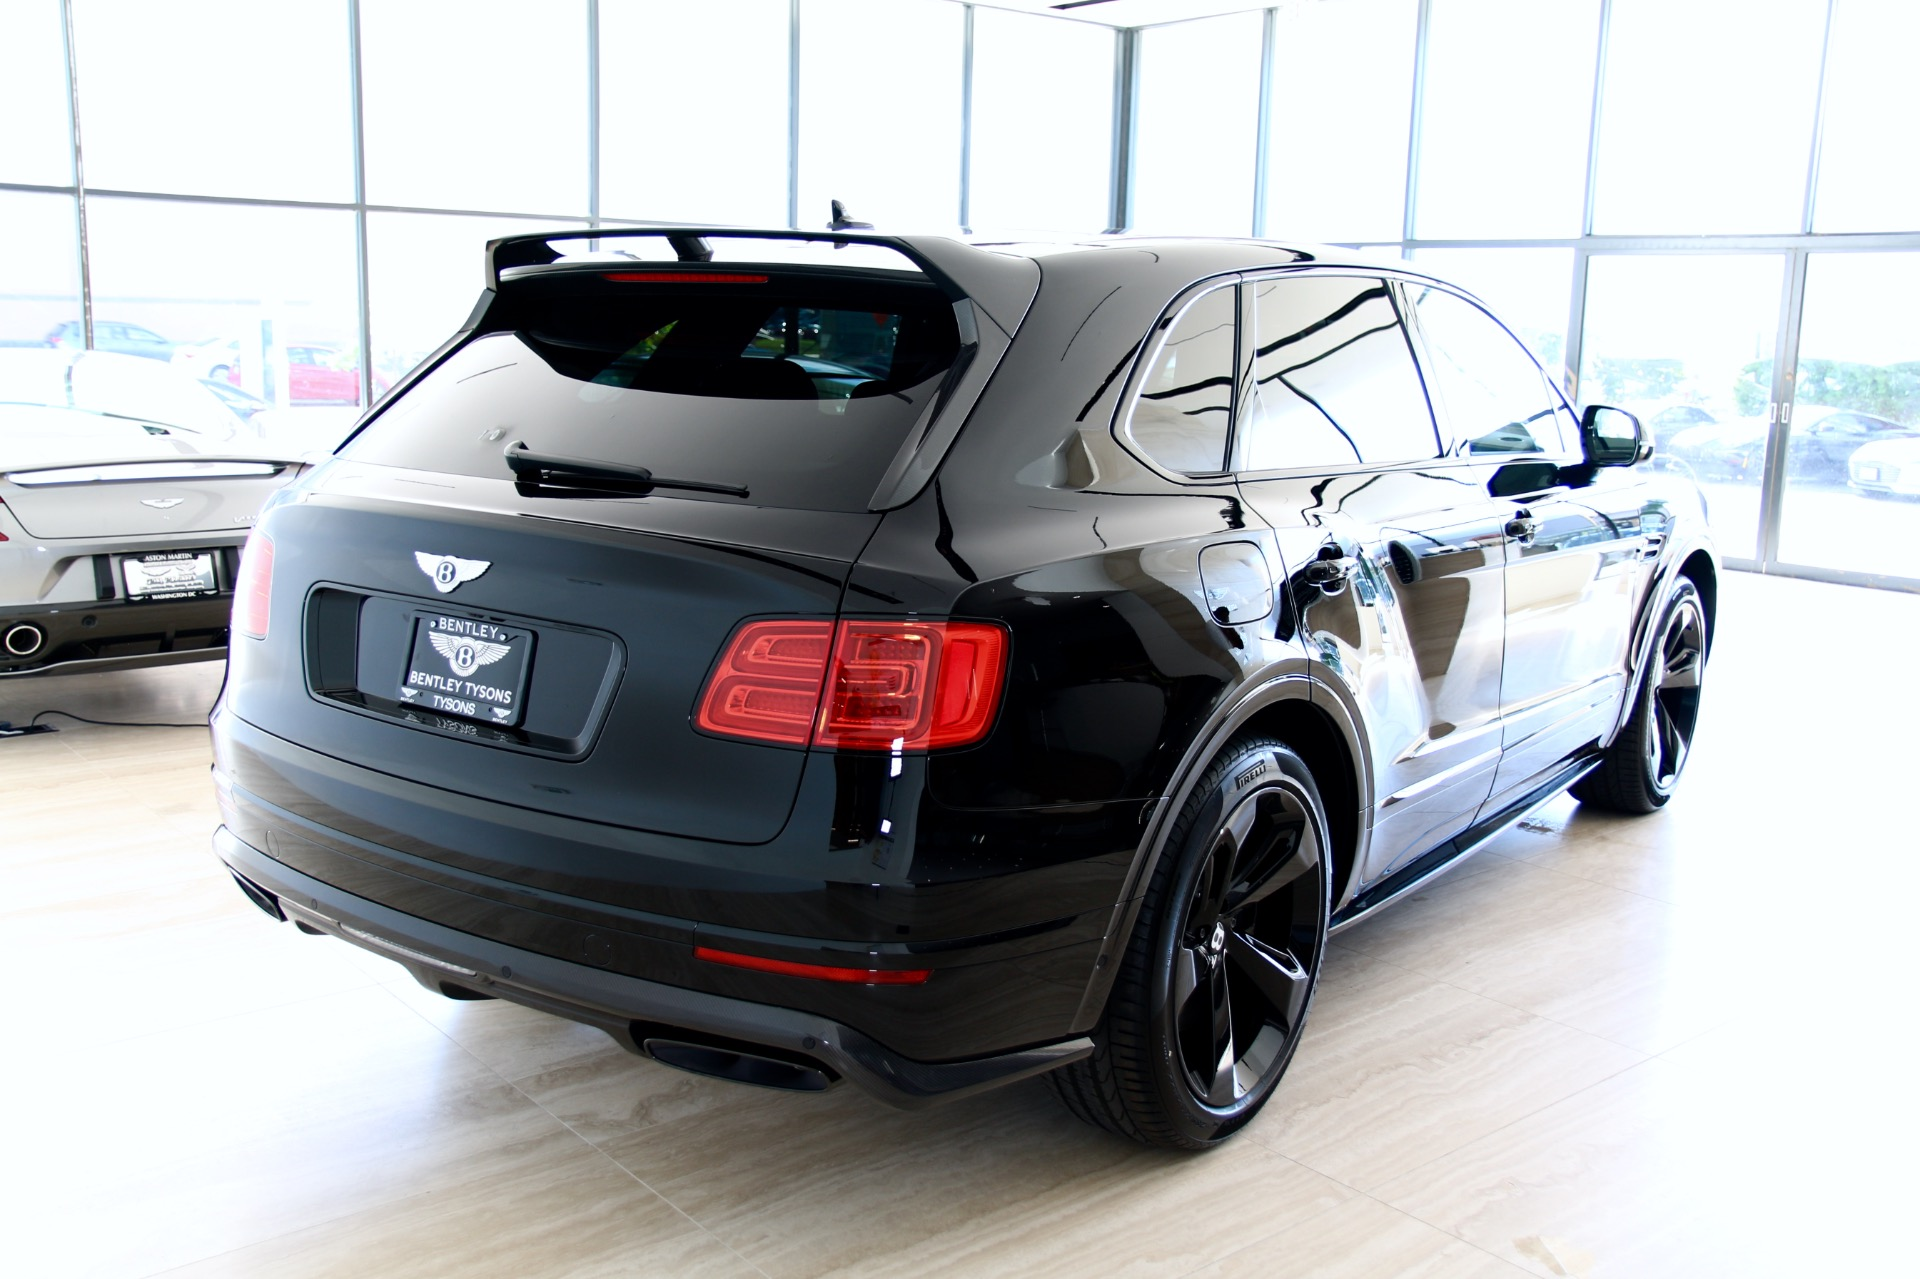 2018 Bentley BENTAYGA W12 BLACK EDITION Stock  8N018676 for sale near Vienna VA  VA Bentley